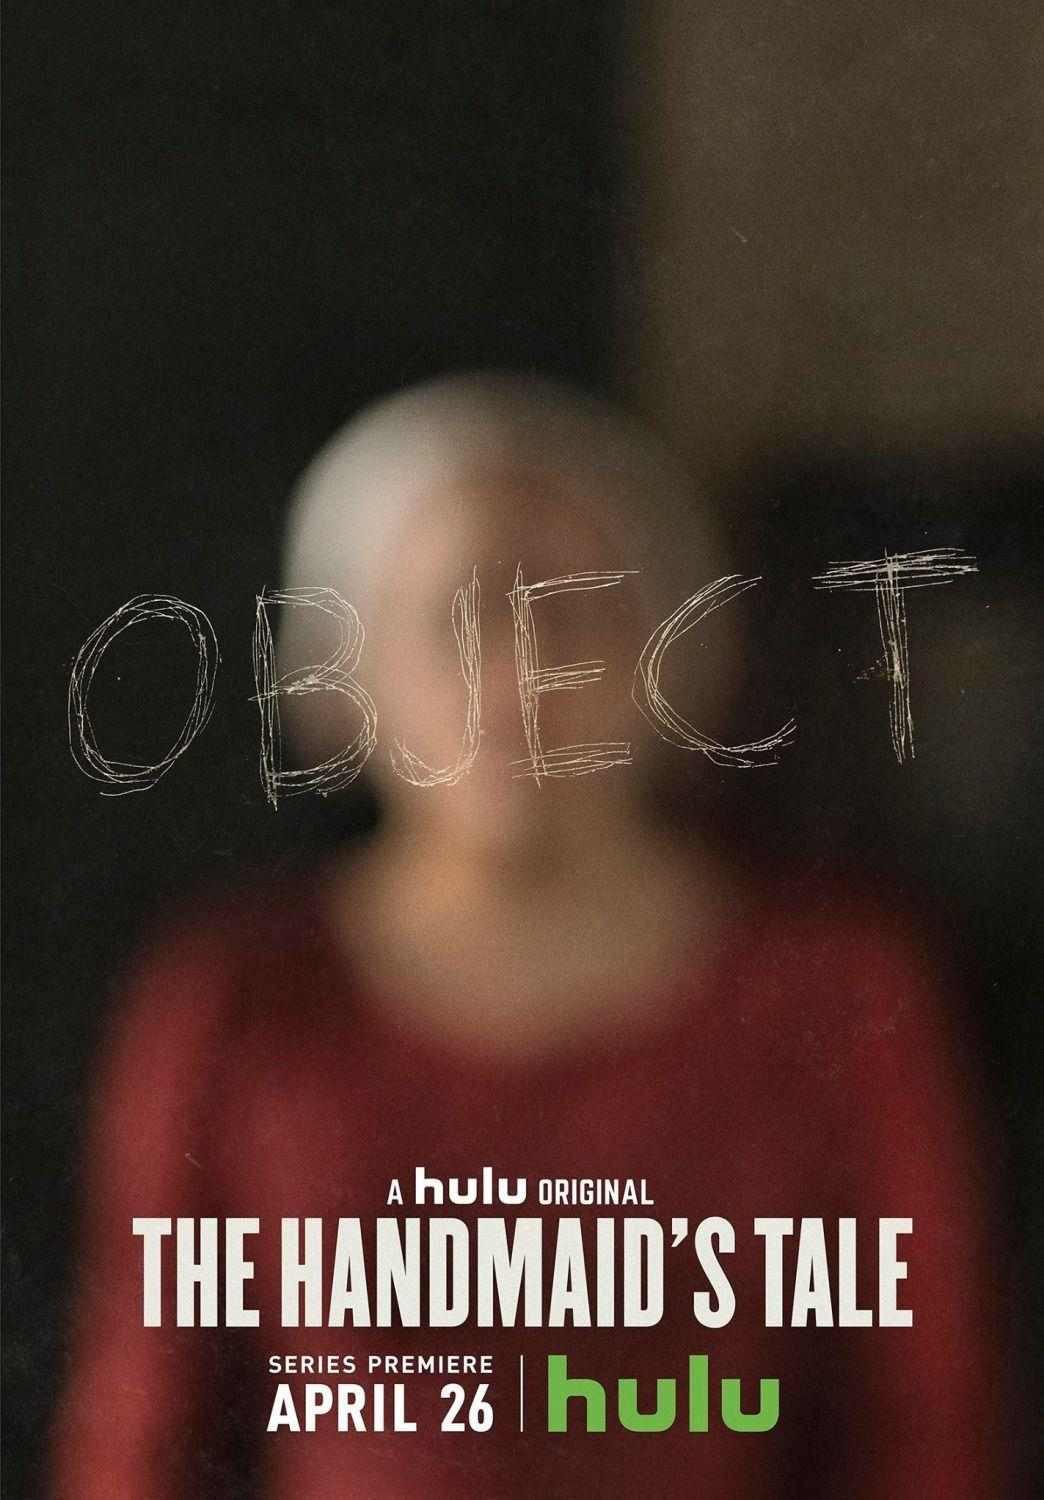 The Handmaid's Tale (2017) Poster 2 | Posters | Pinterest